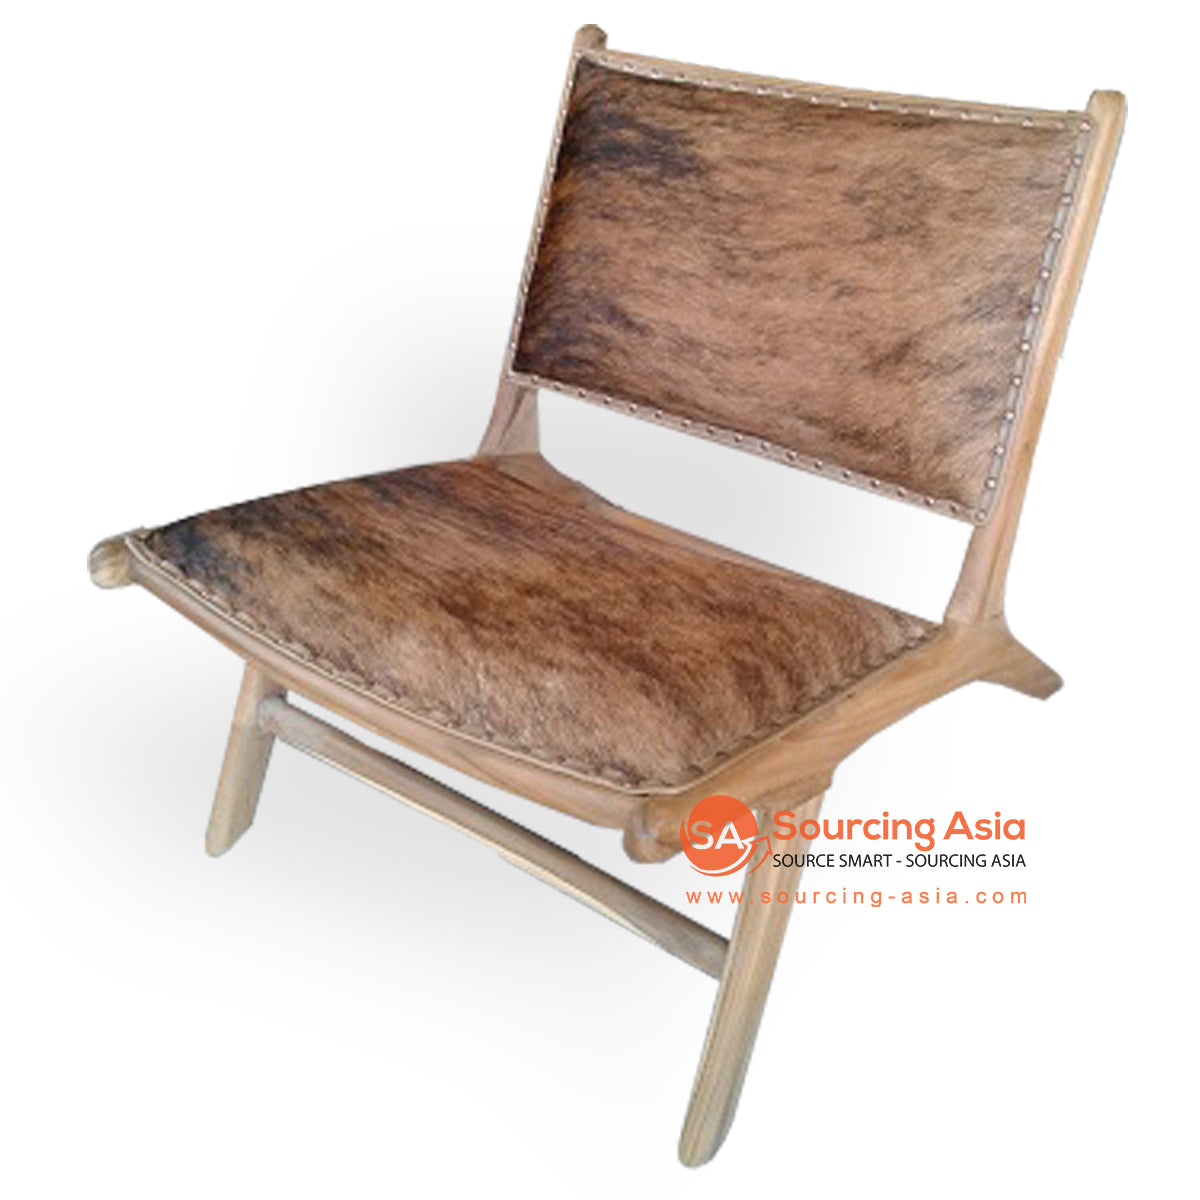 KUSJ002-CH LAZY CHAIR WITH COW HIDE